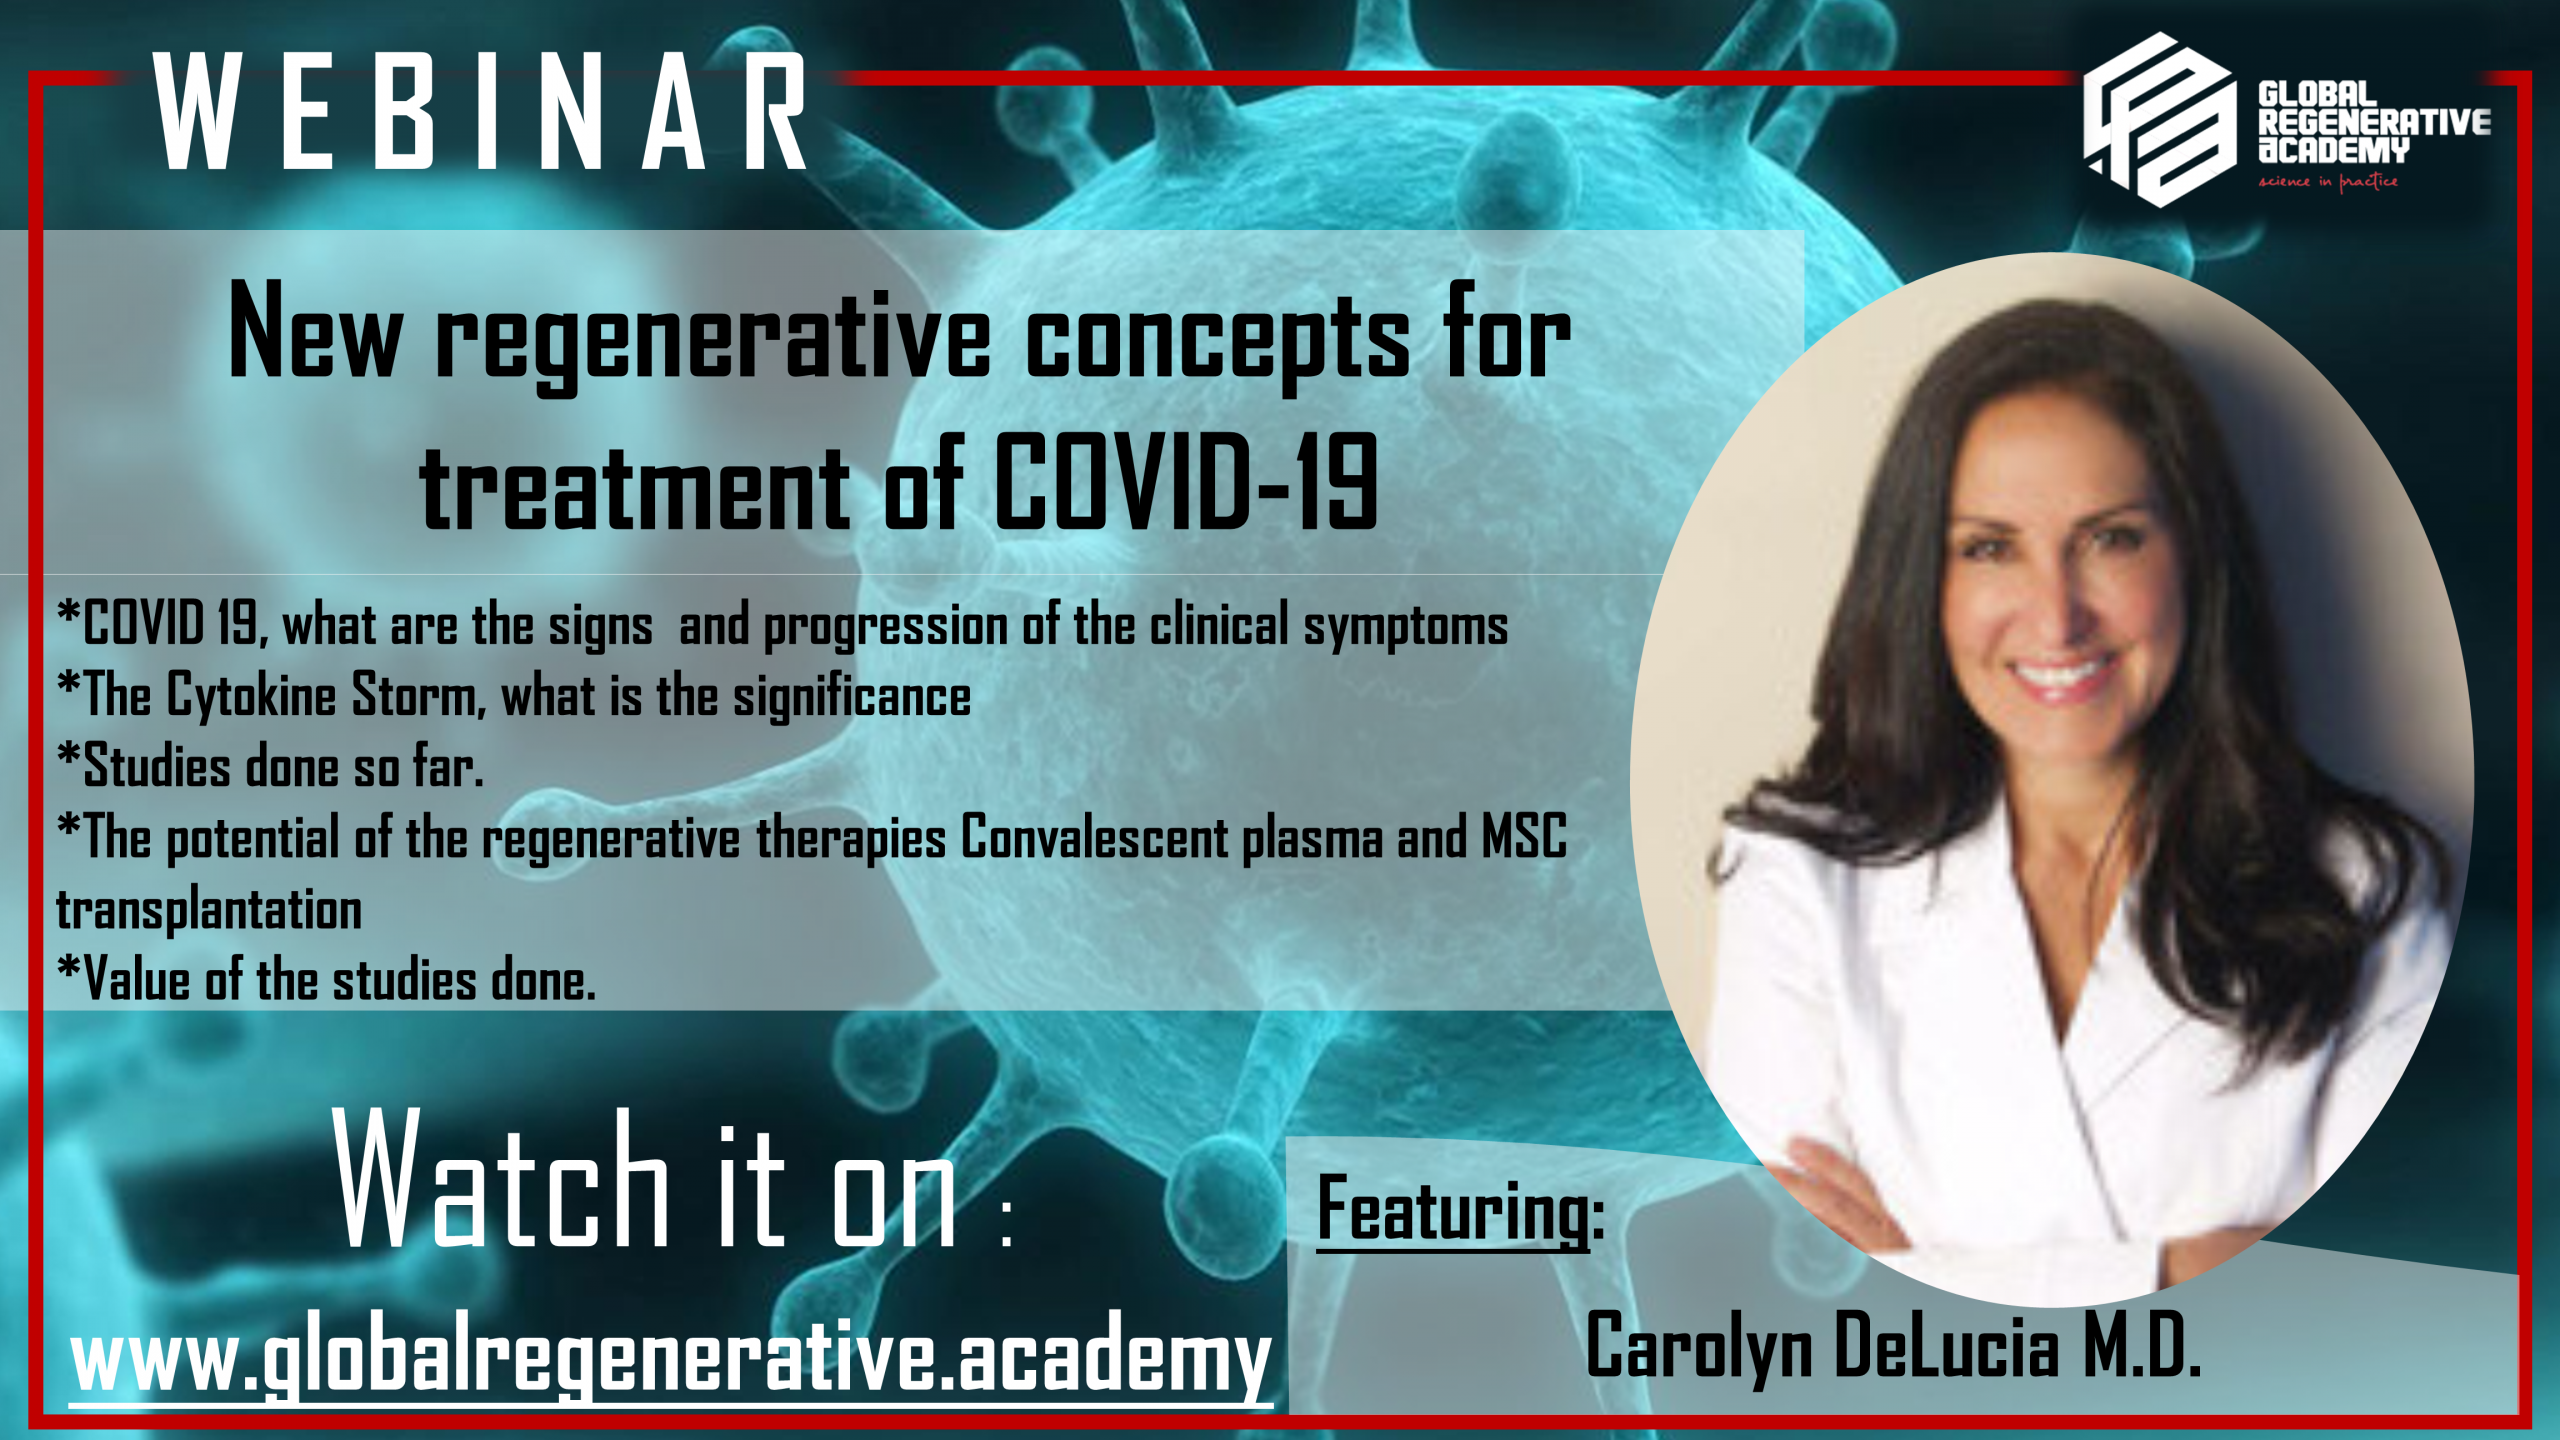 New regenerative concepts for treatment of COVID-19 ​